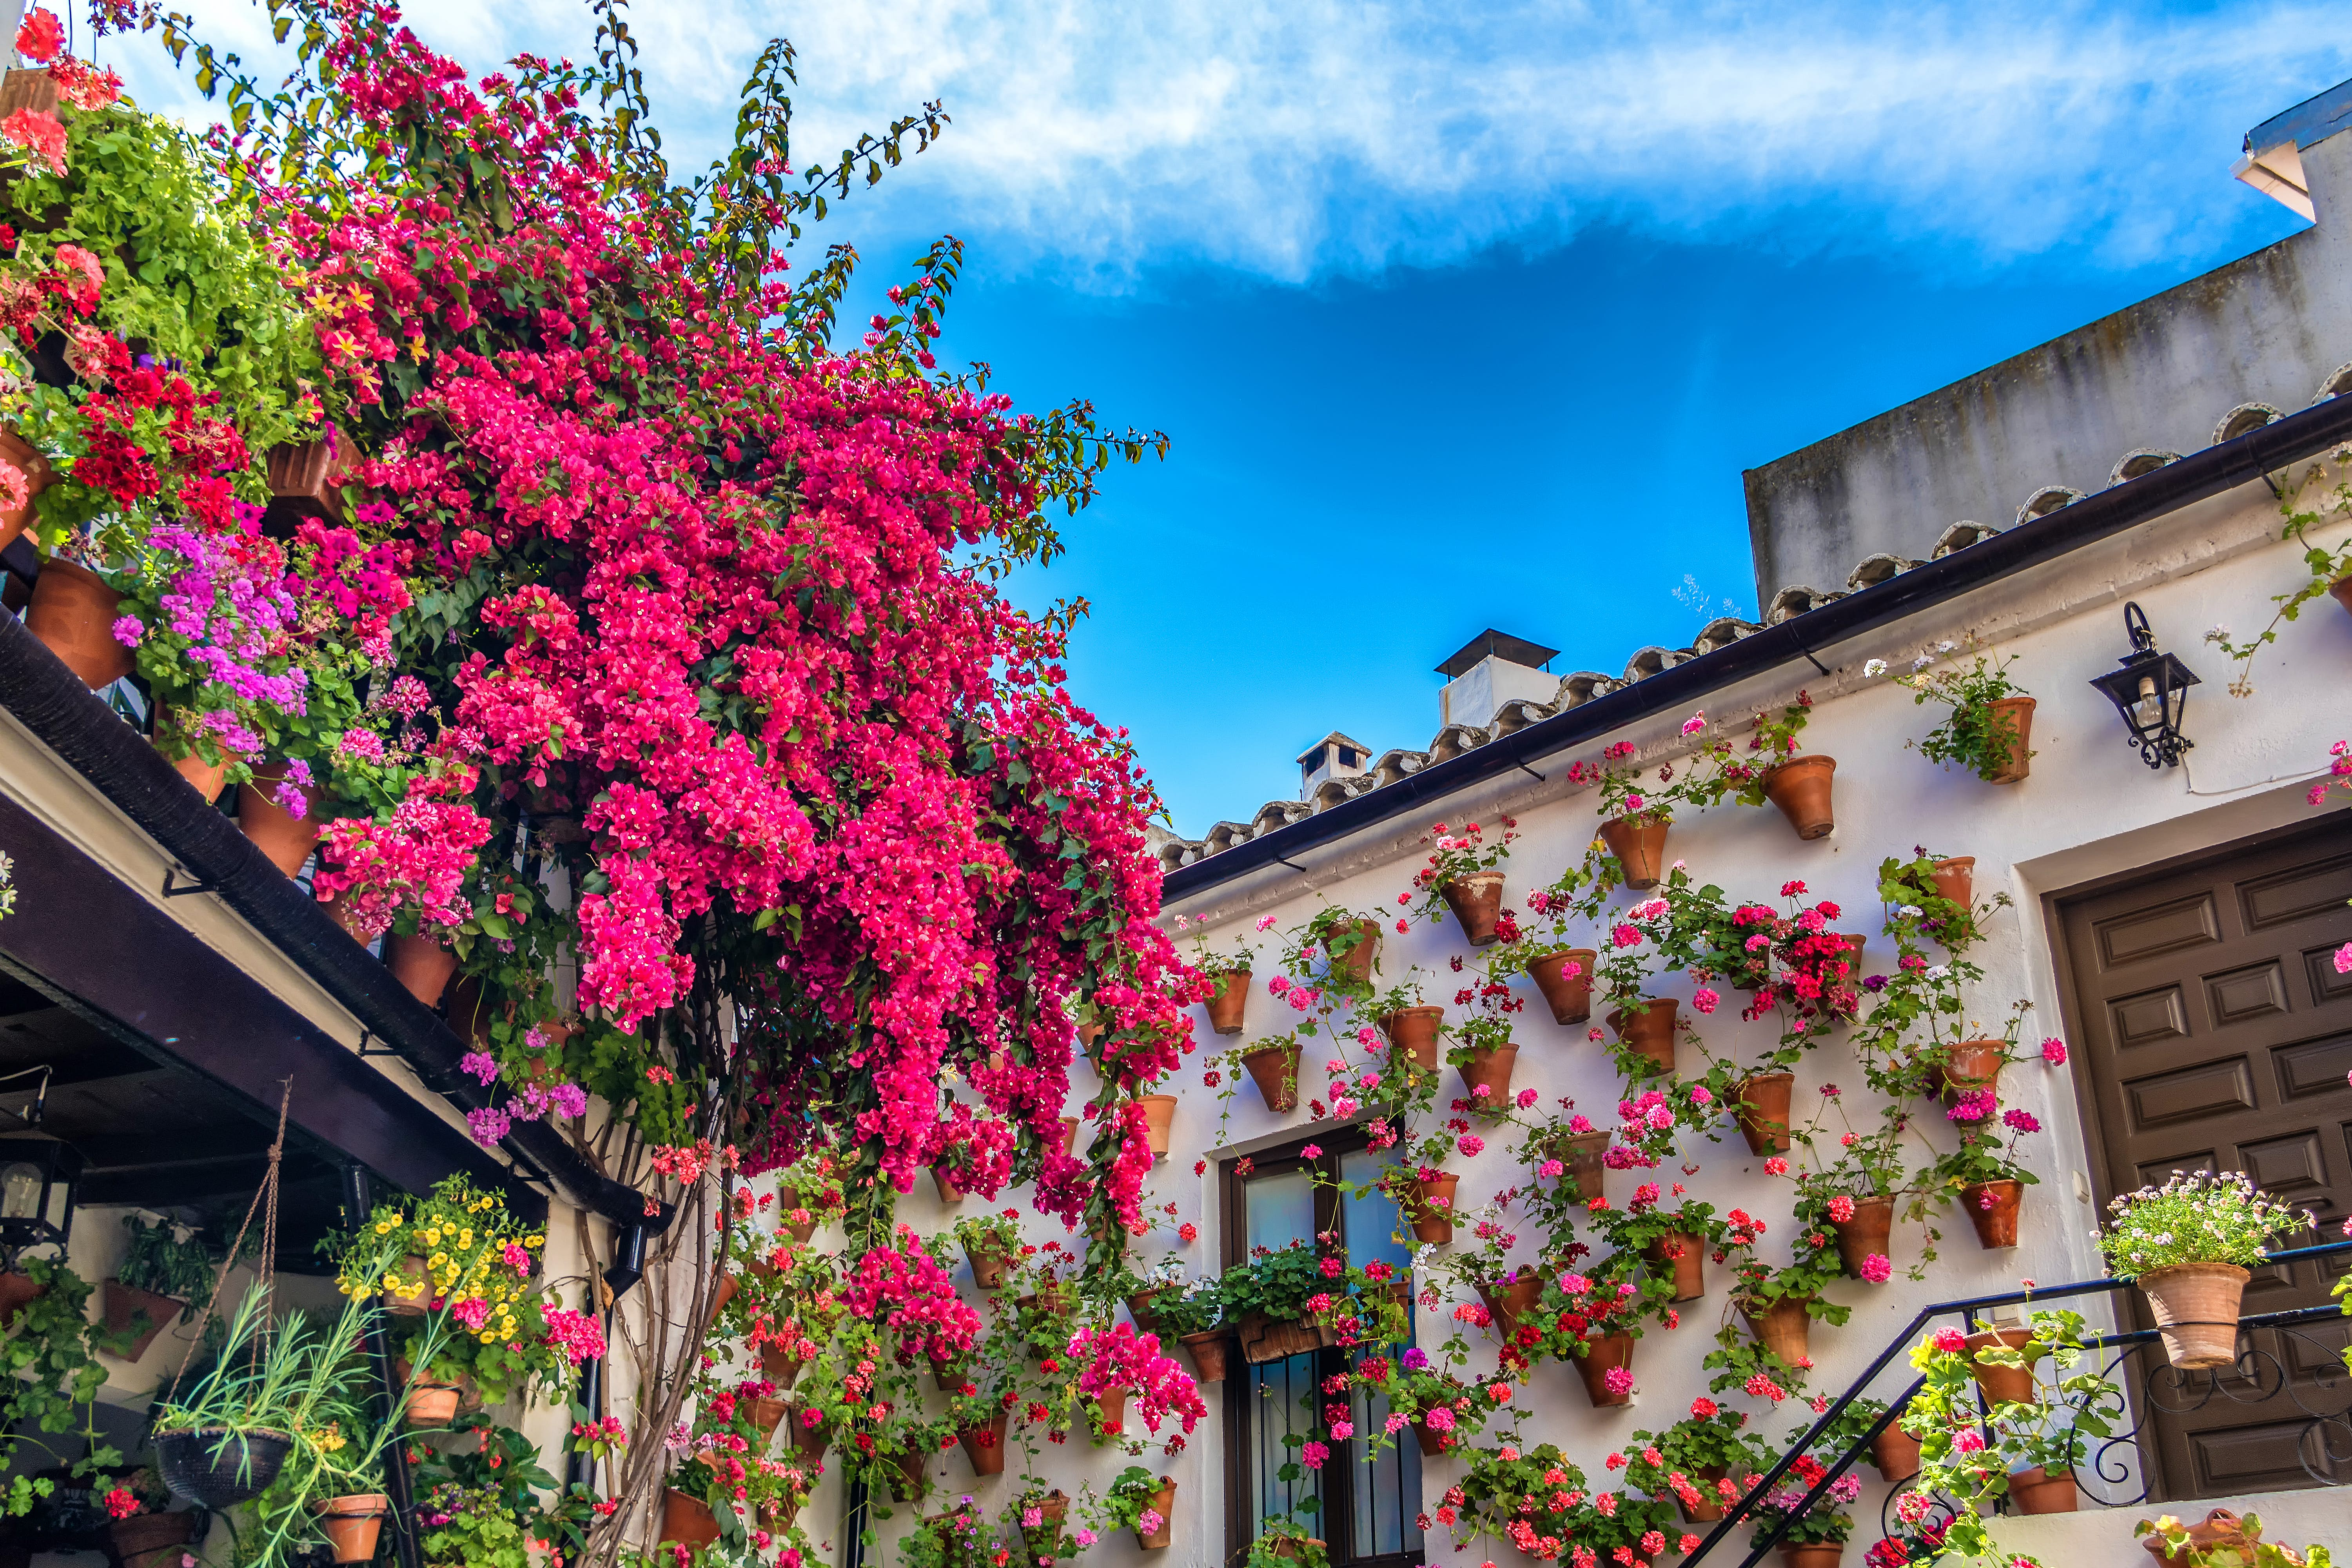 Geraniums and bougainvillea hang on the side of a home during the Festival of the Patios, Spain. The sun is shining and the flowers are in bloom.